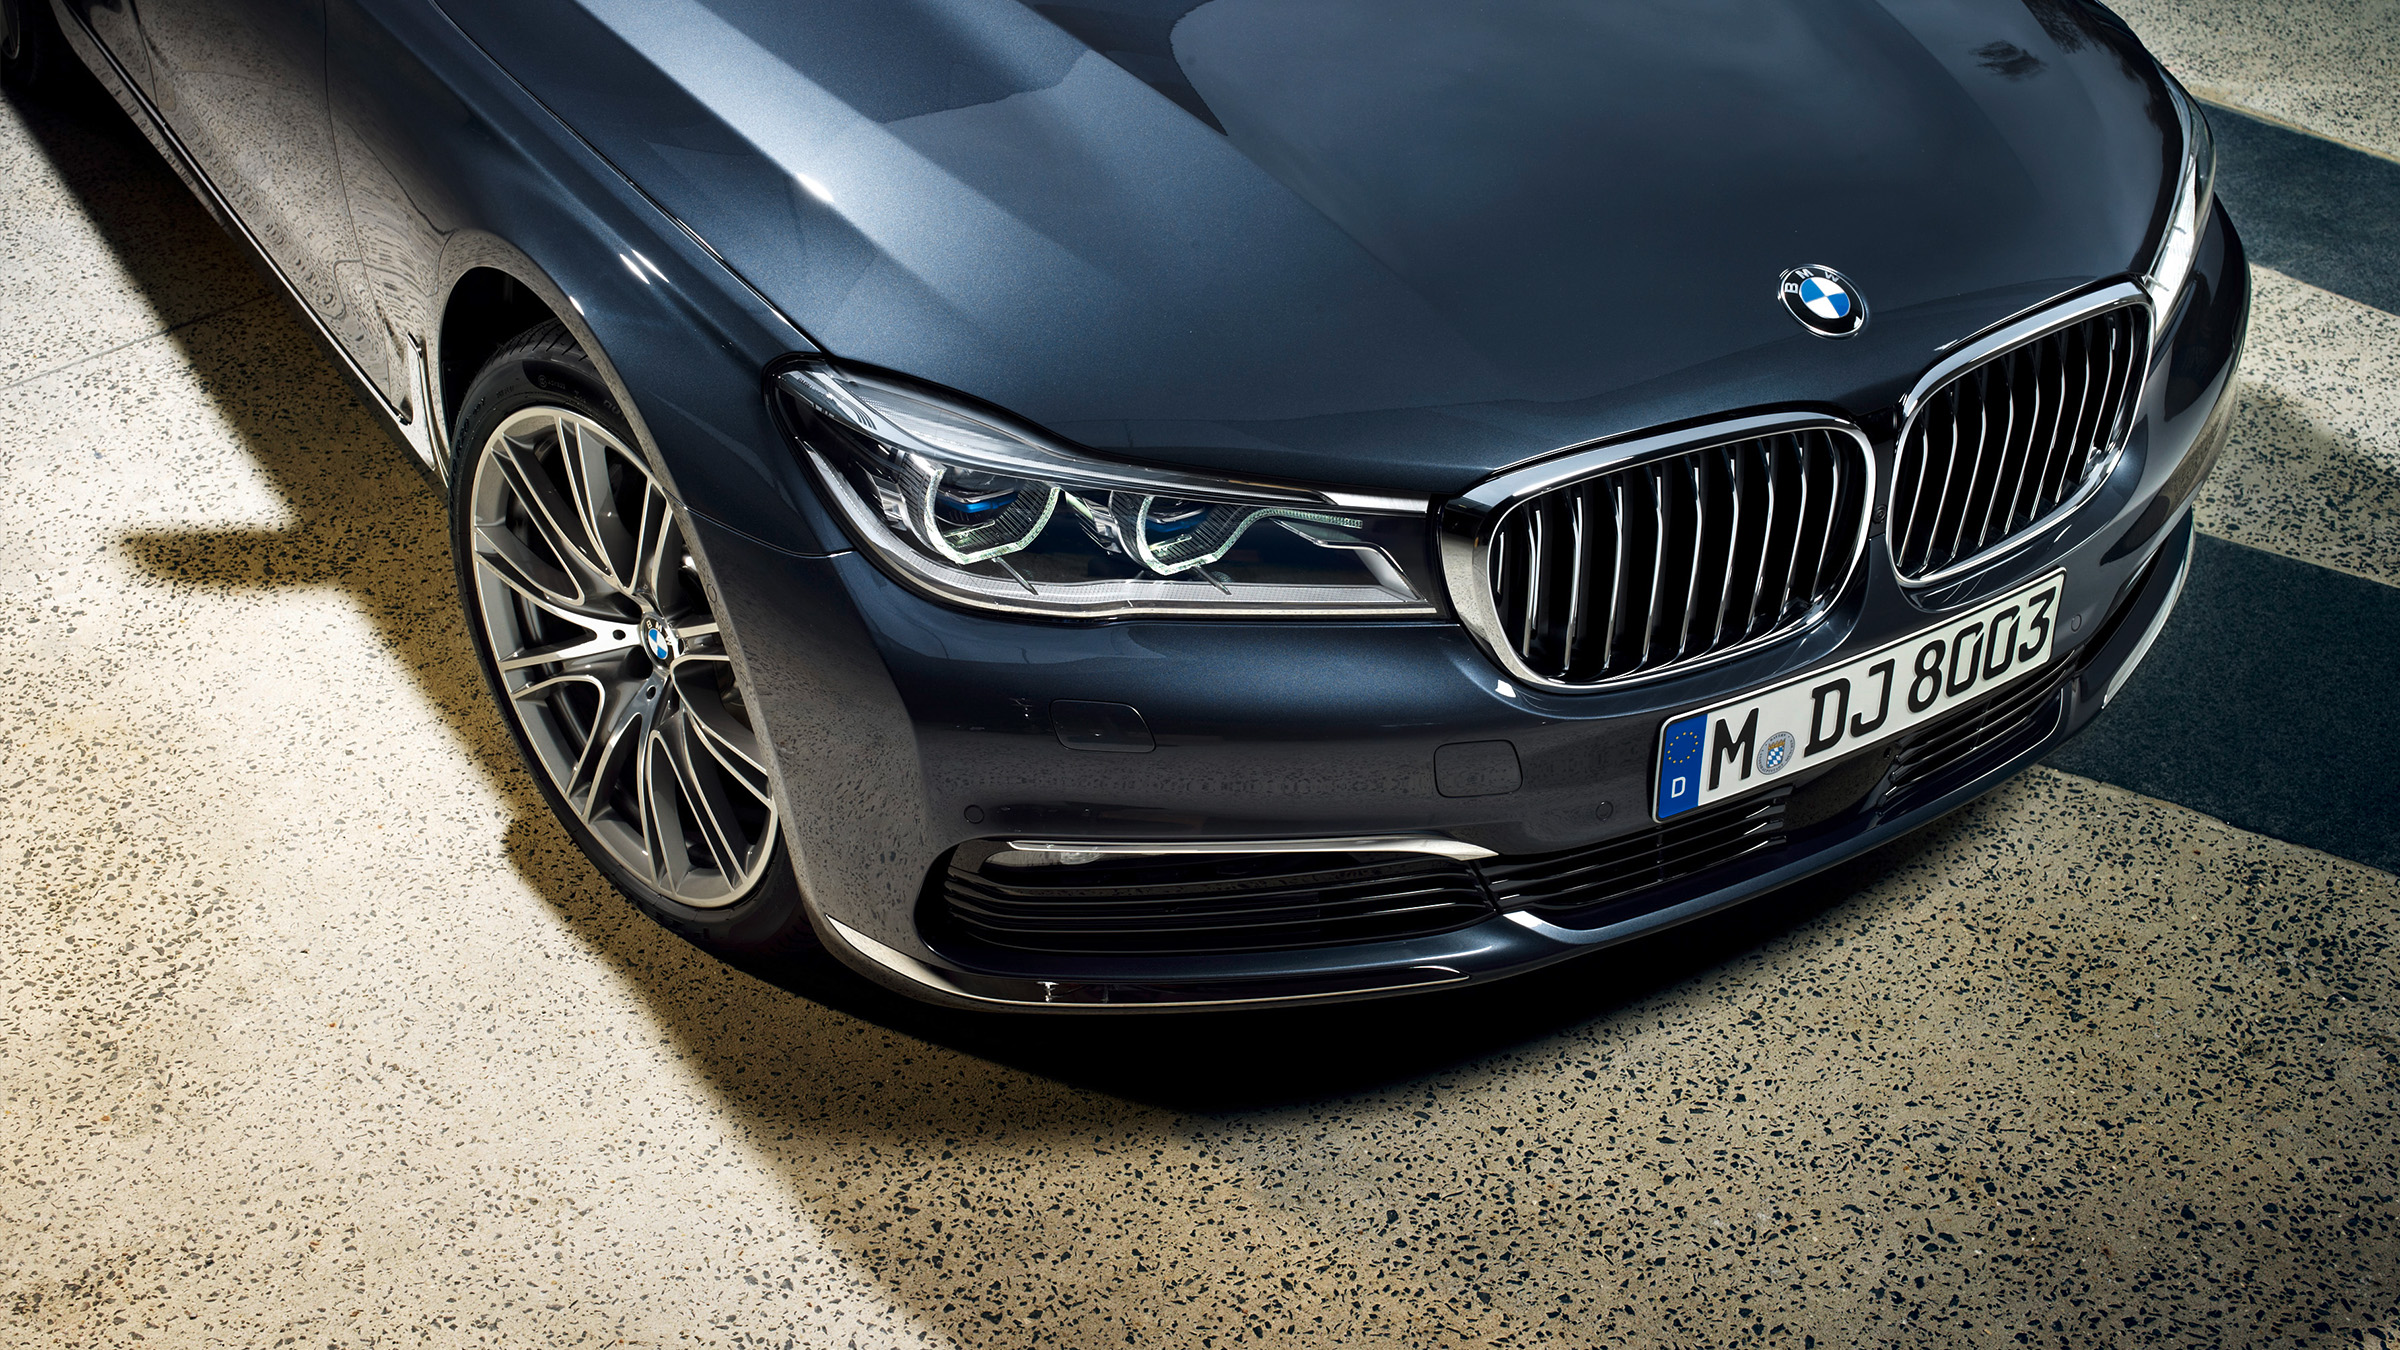 BMW_7ER_EMIR_HAVERIC_07_2400